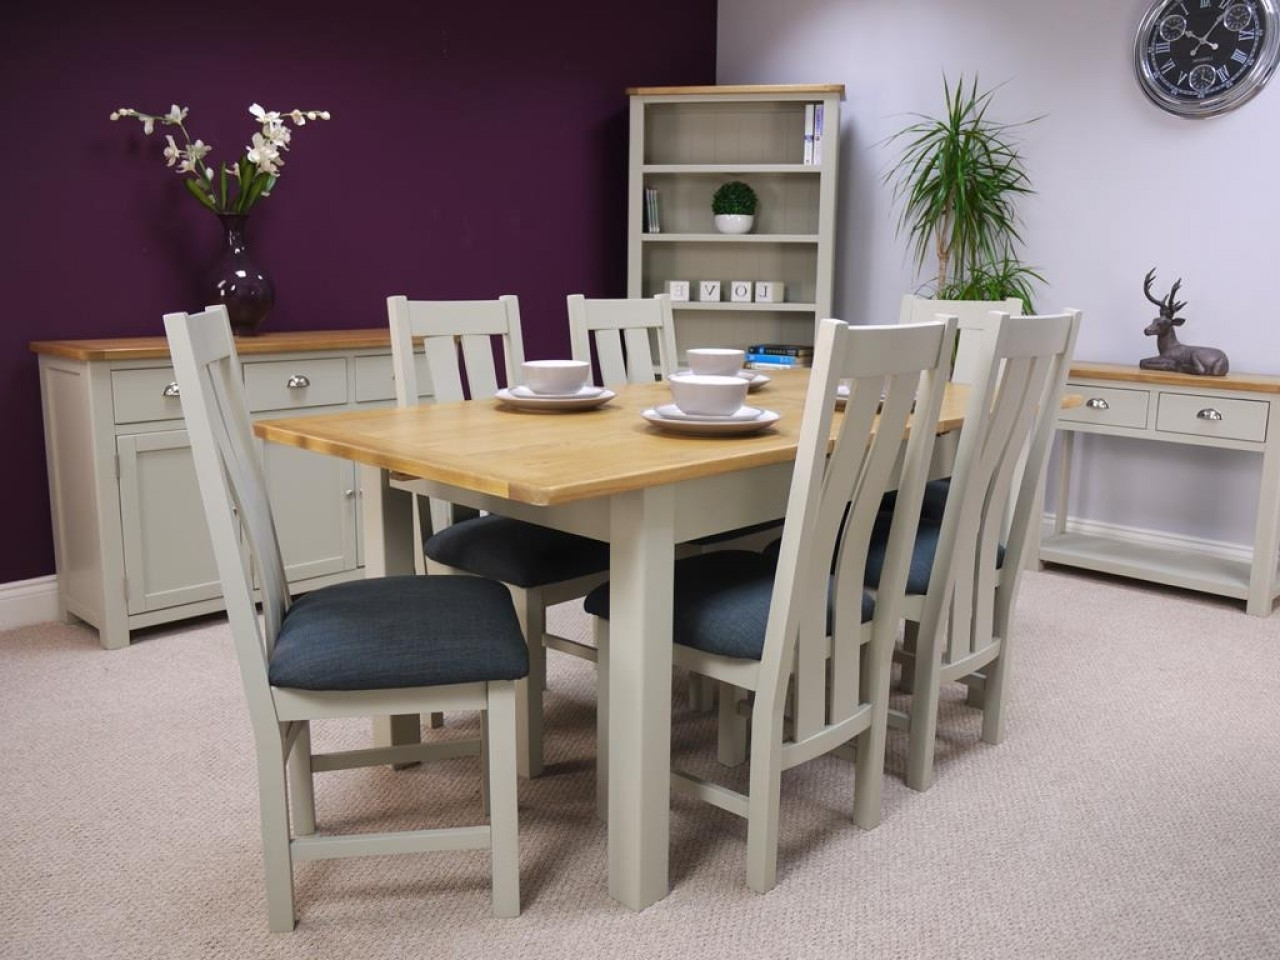 Extending Dining Room Tables And Chairs Regarding Best And Newest  (View 3 of 25)